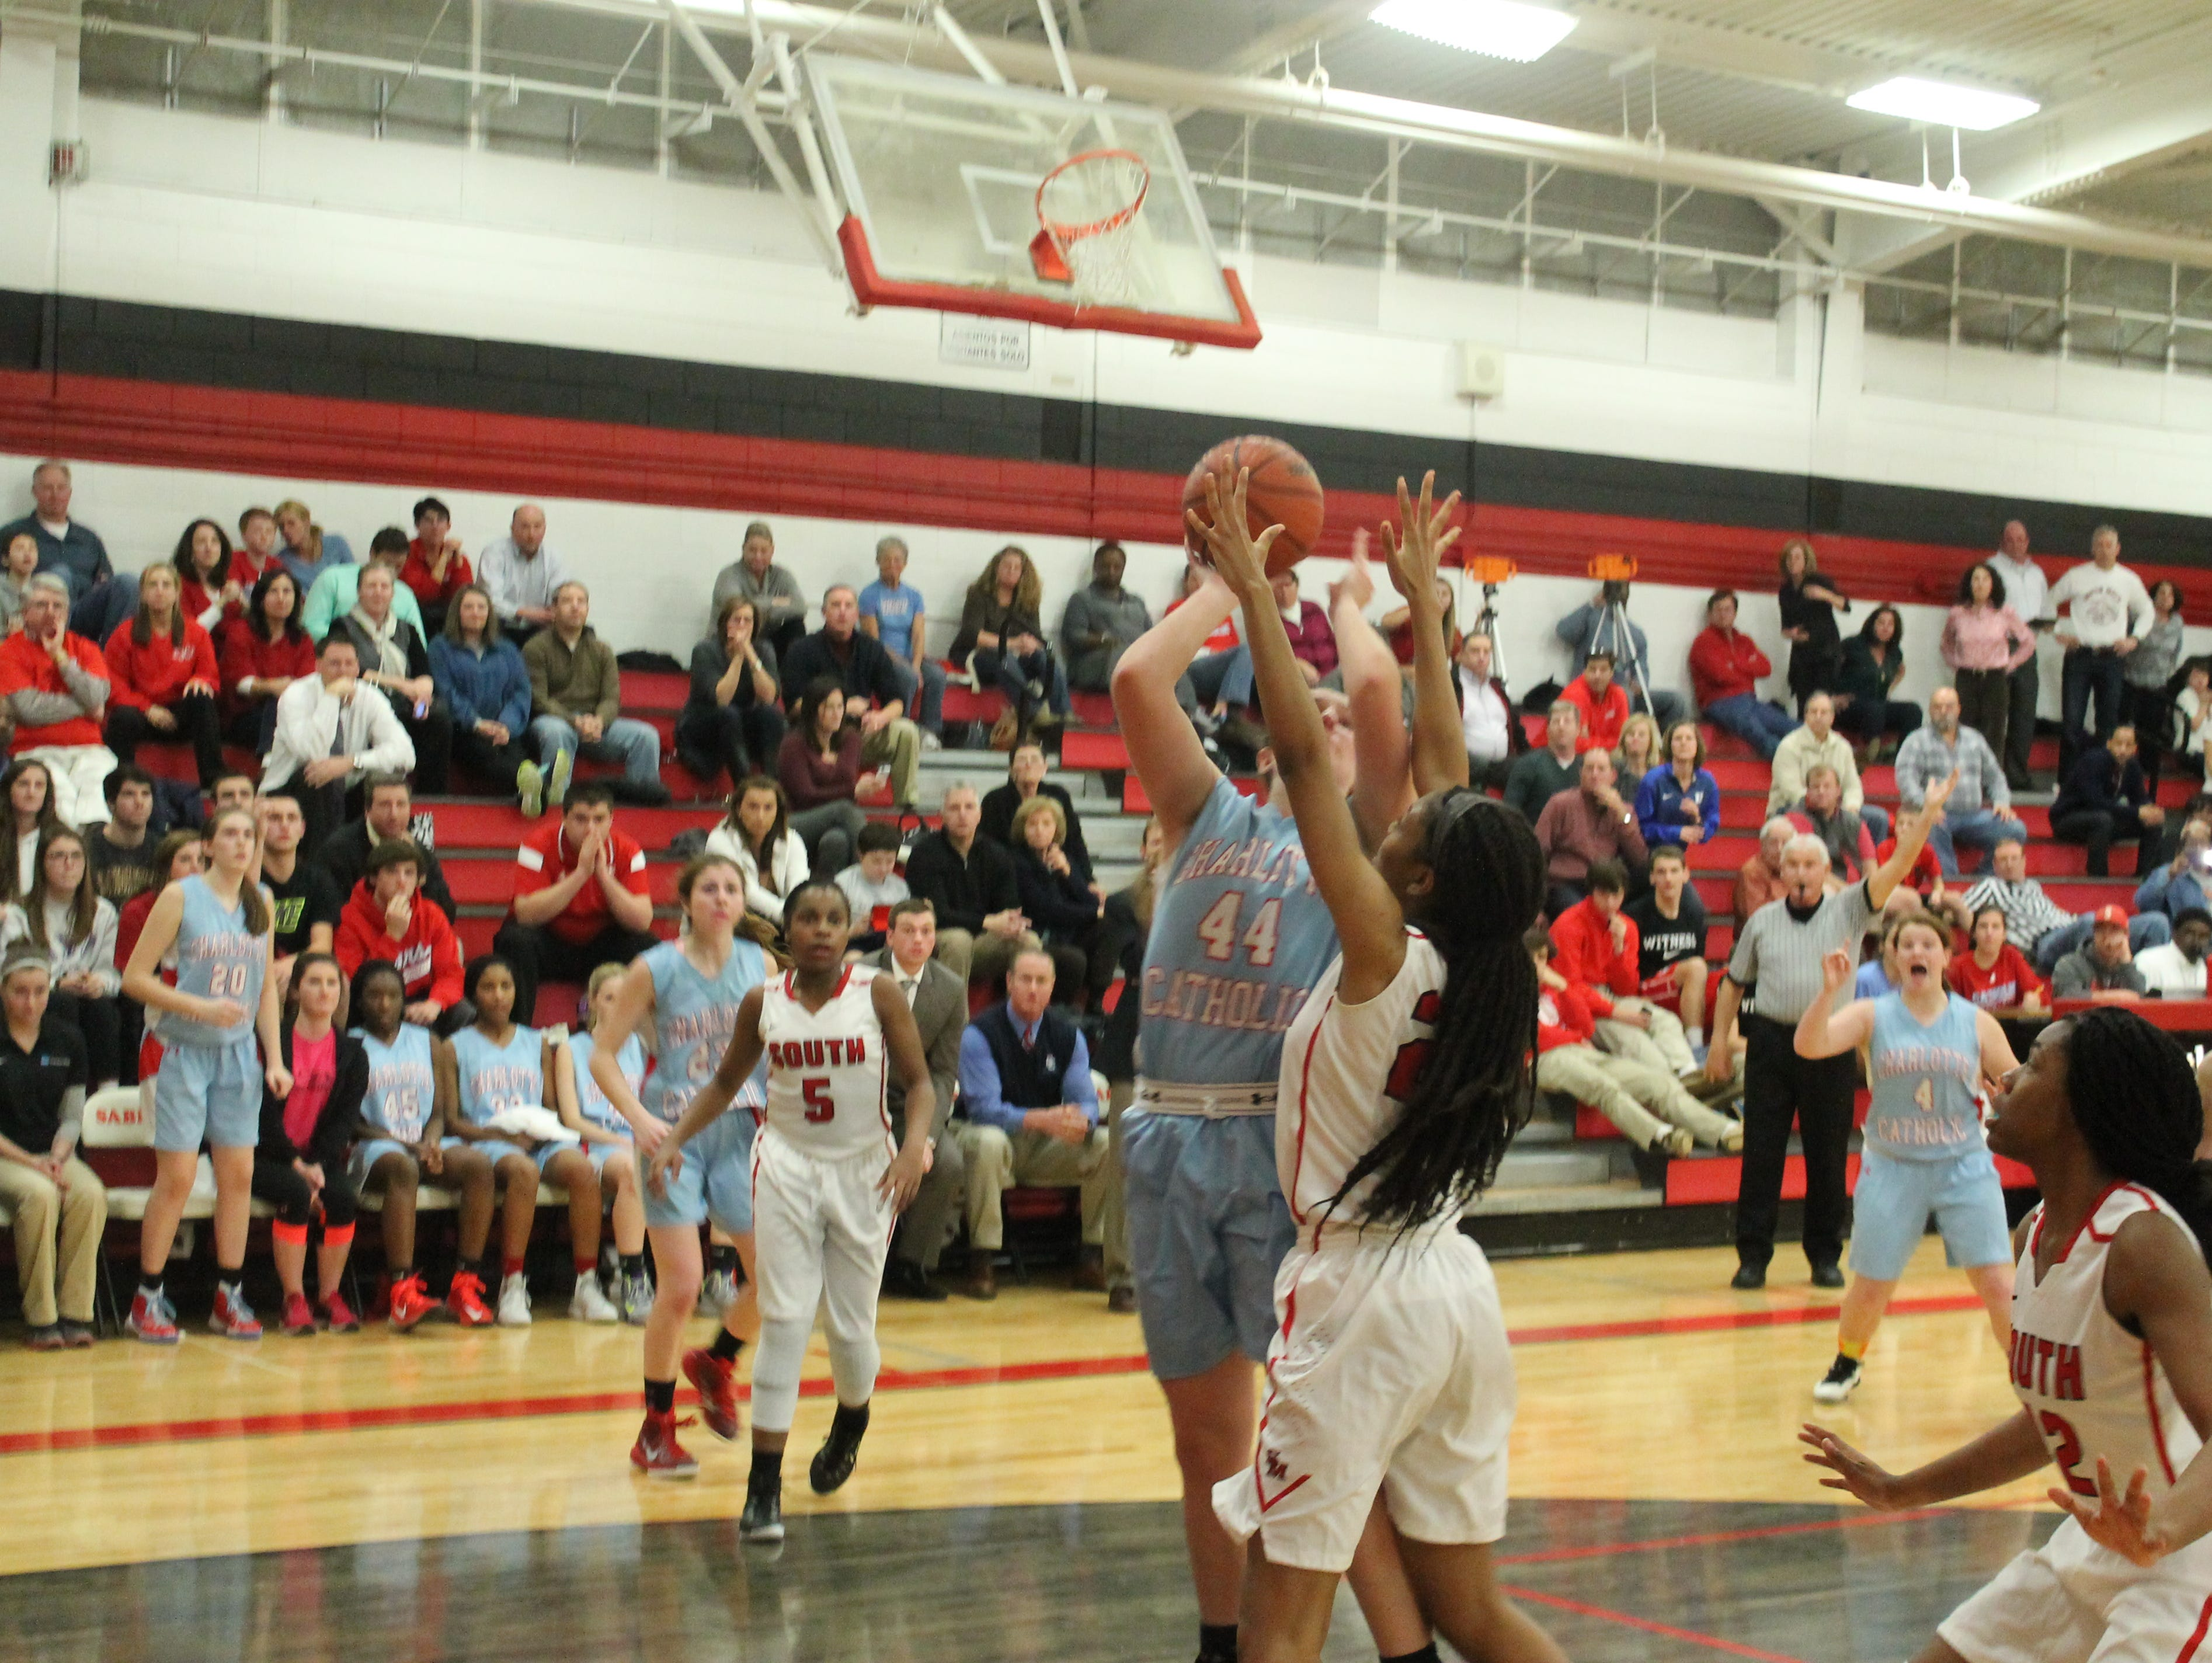 Charlotte Catholic defeated South Meck on a buzzer-beating shot.